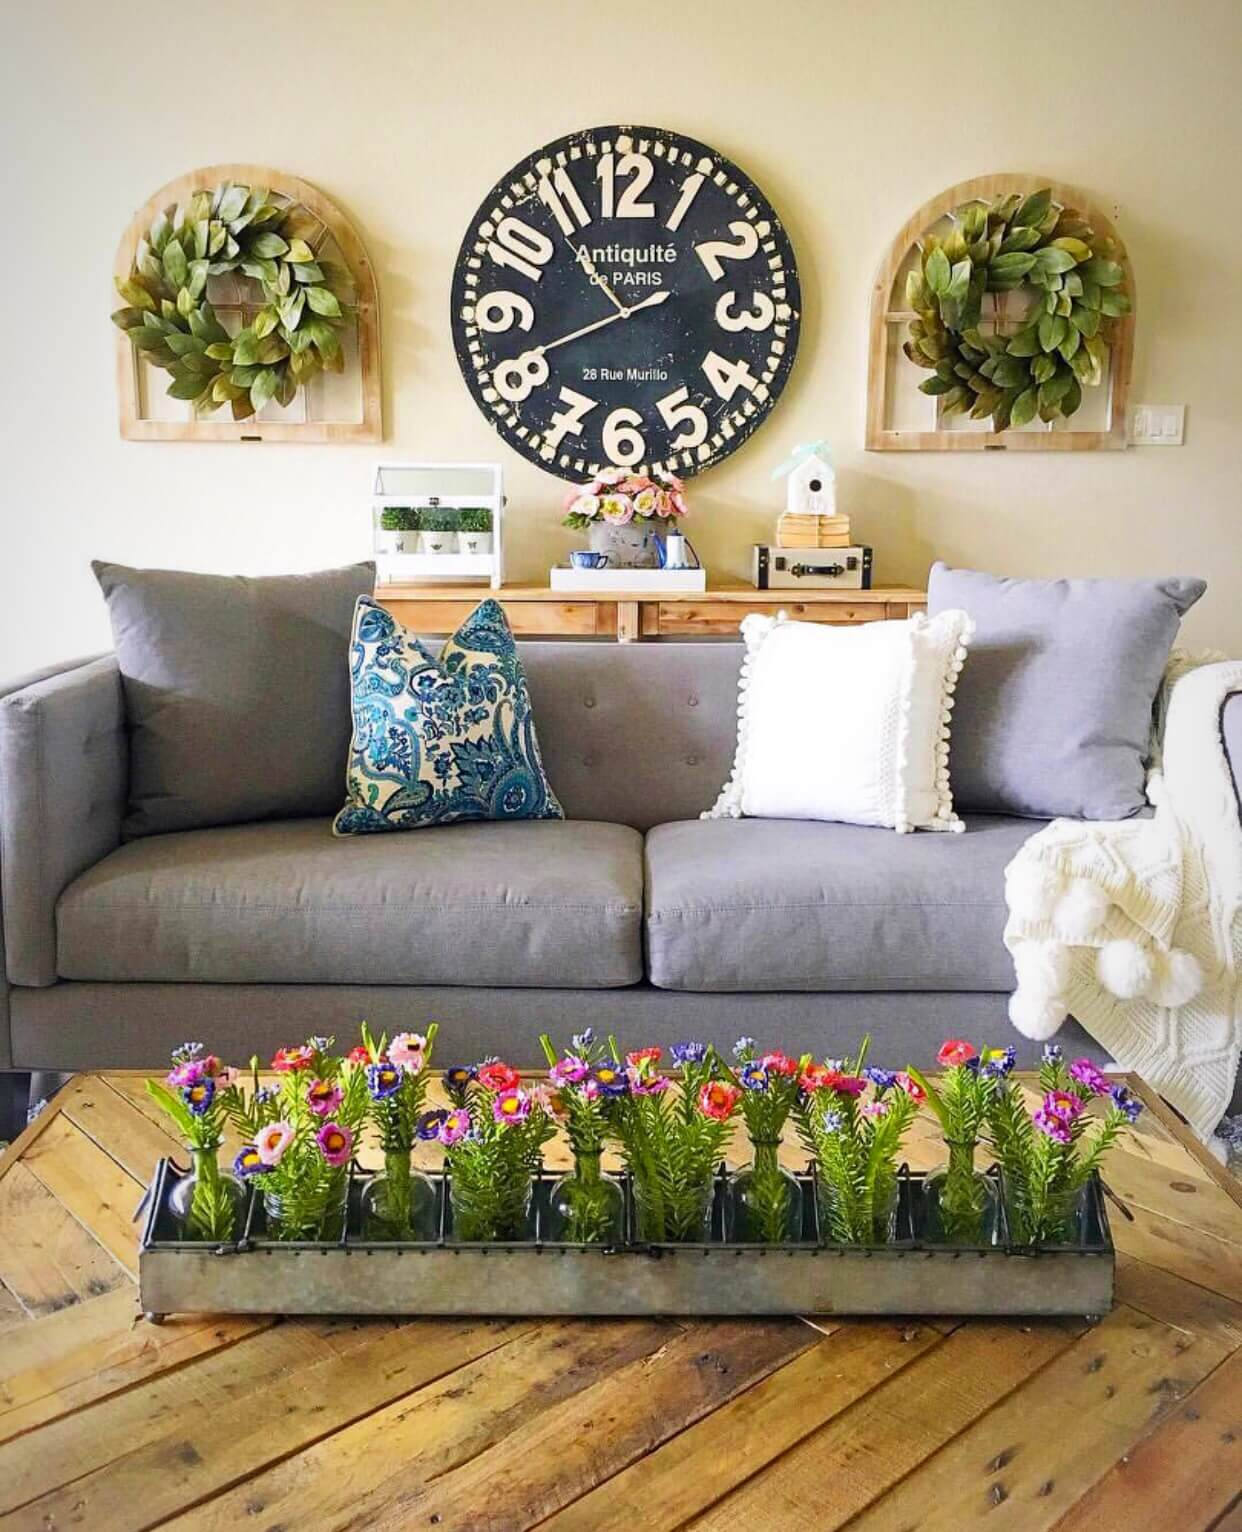 33 Best Rustic Living Room Wall Decor Ideas and Designs ... on Wall Decor Ideas  id=94141